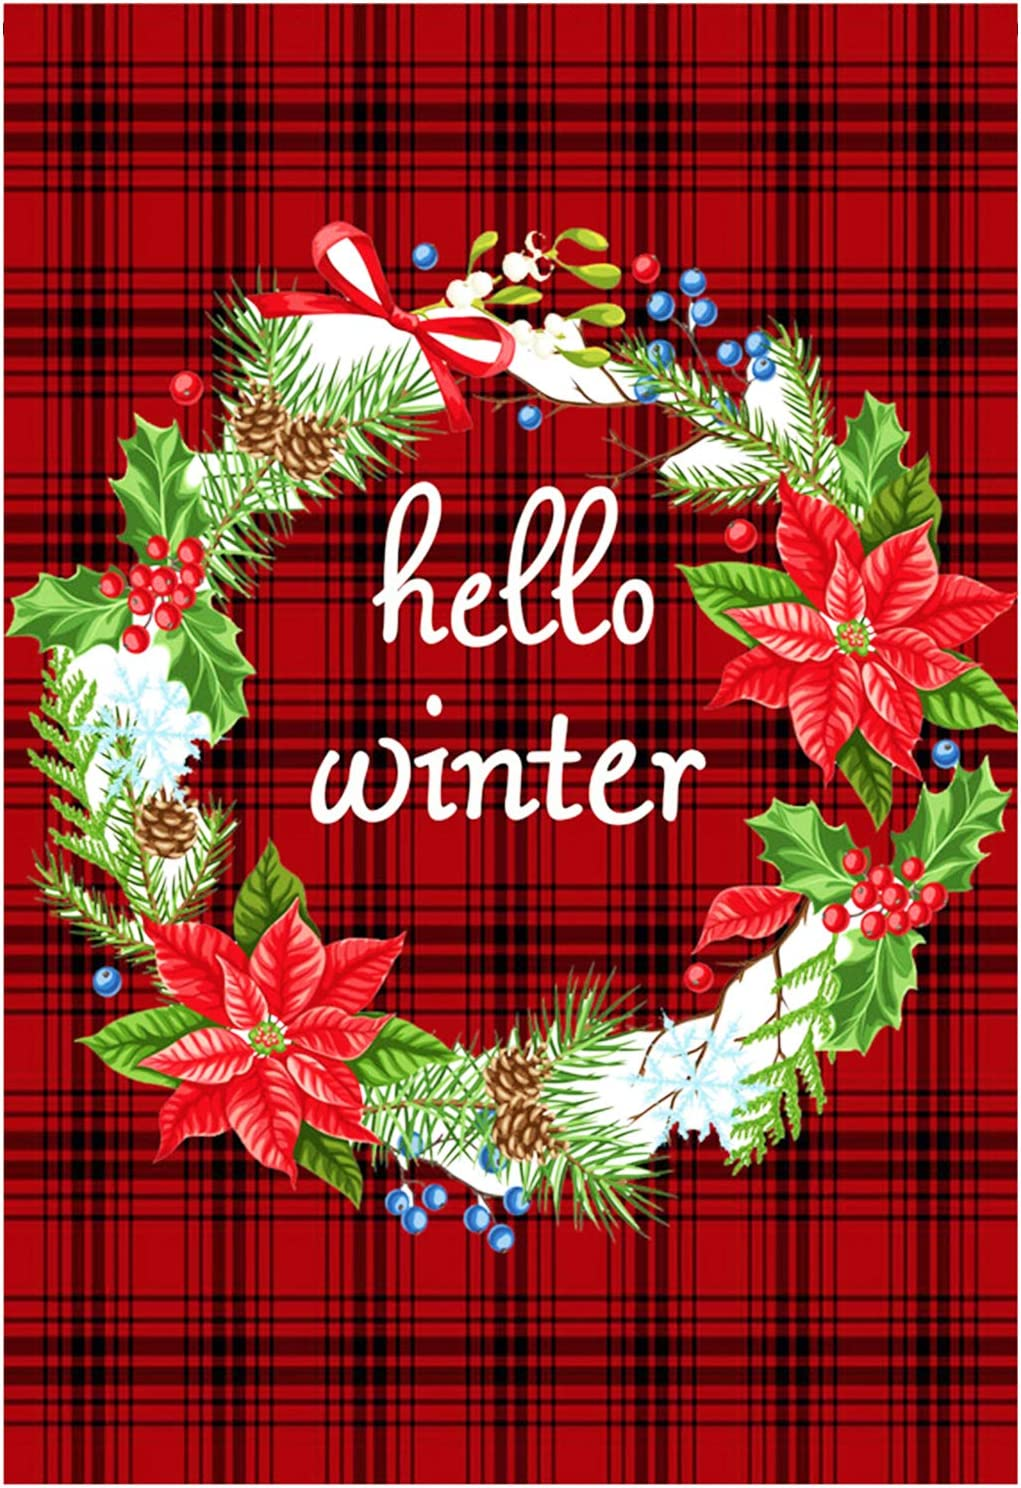 Zotemo Burlap Hello Winter Wreath Garden Flag, Double Sided Buffalo Plaid Quote Flag for Winter Christmas Home Yard Decorations 12 Inch x 18 Inch